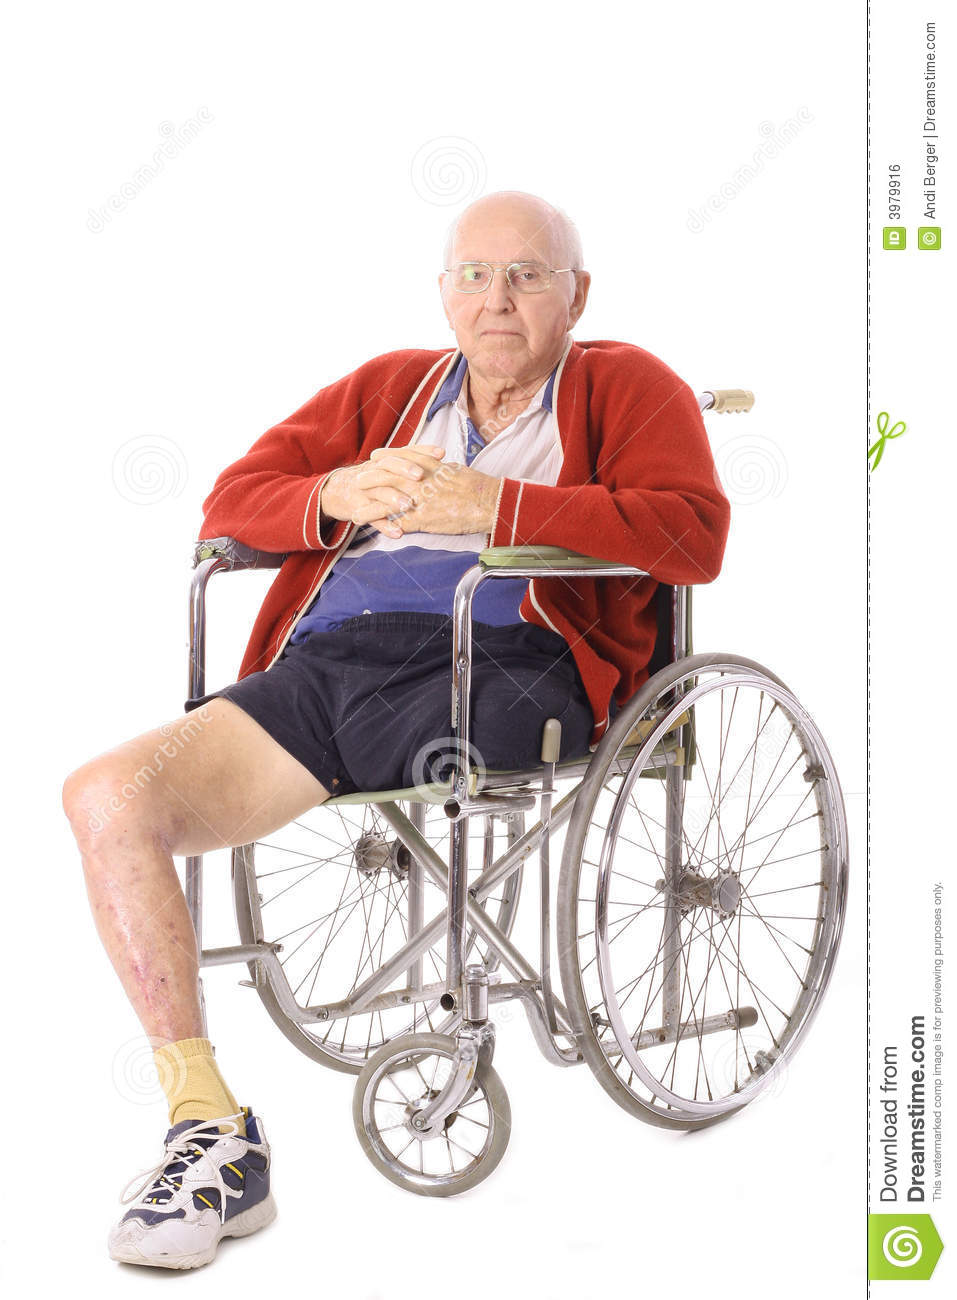 Elderly Man With Leg Amputation Vertical Royalty Free